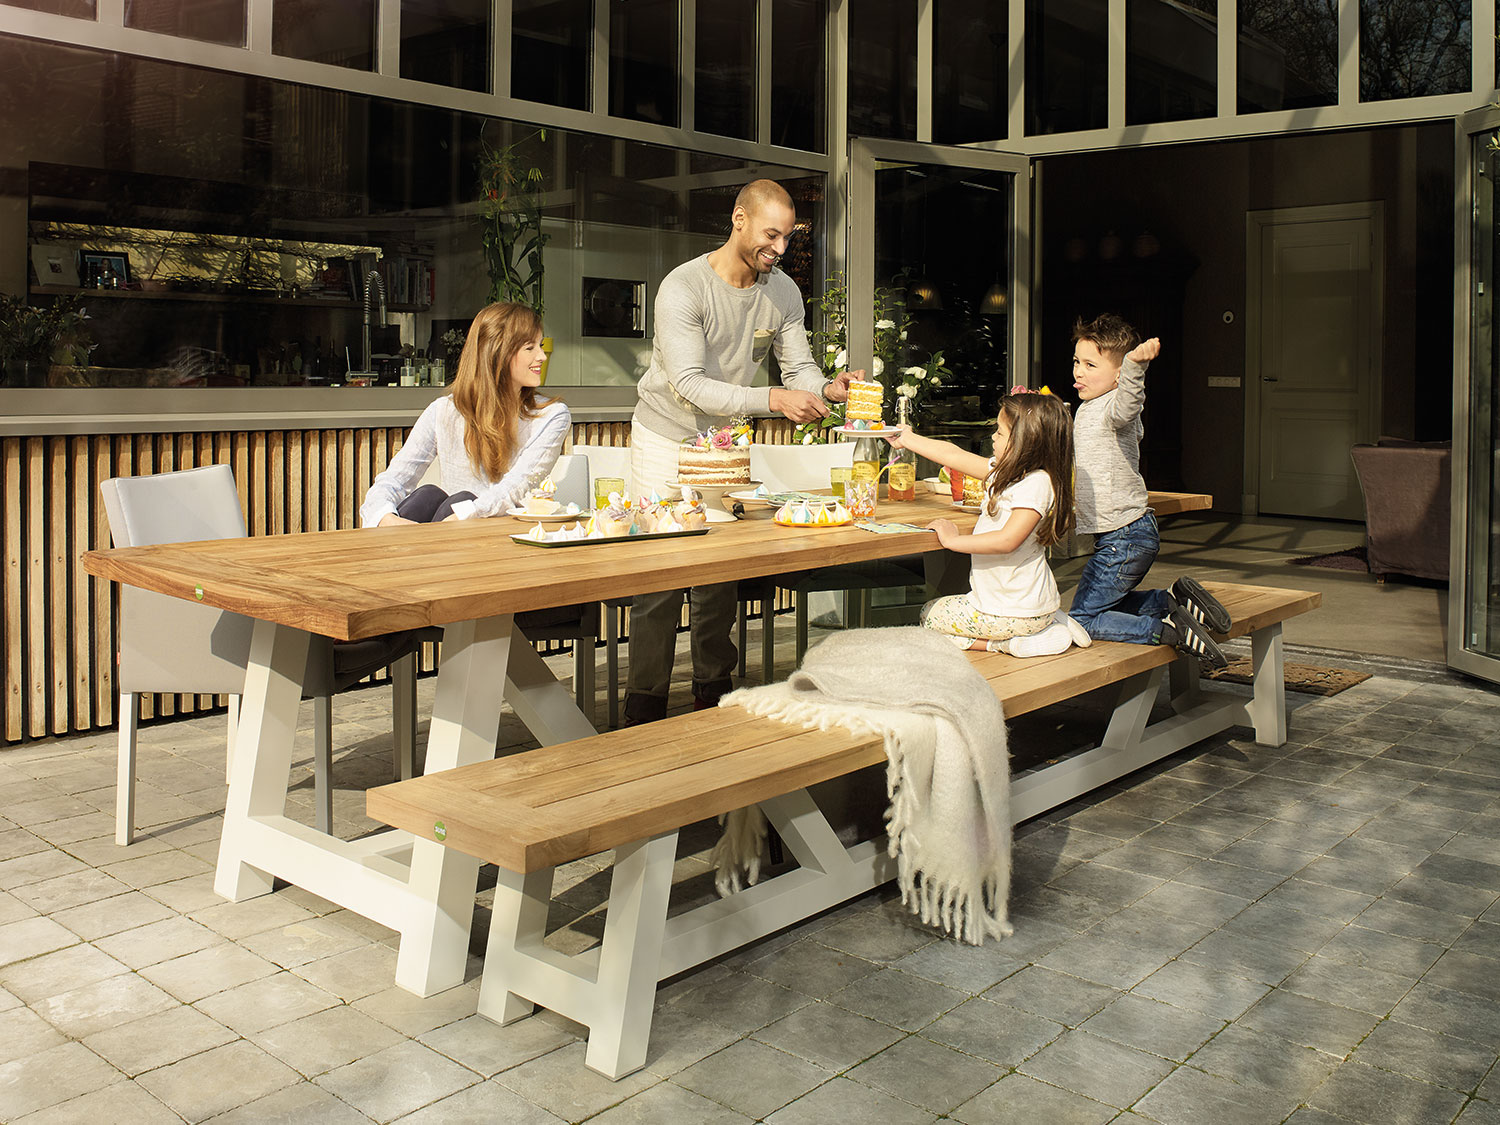 Suns Outdoor Furniture